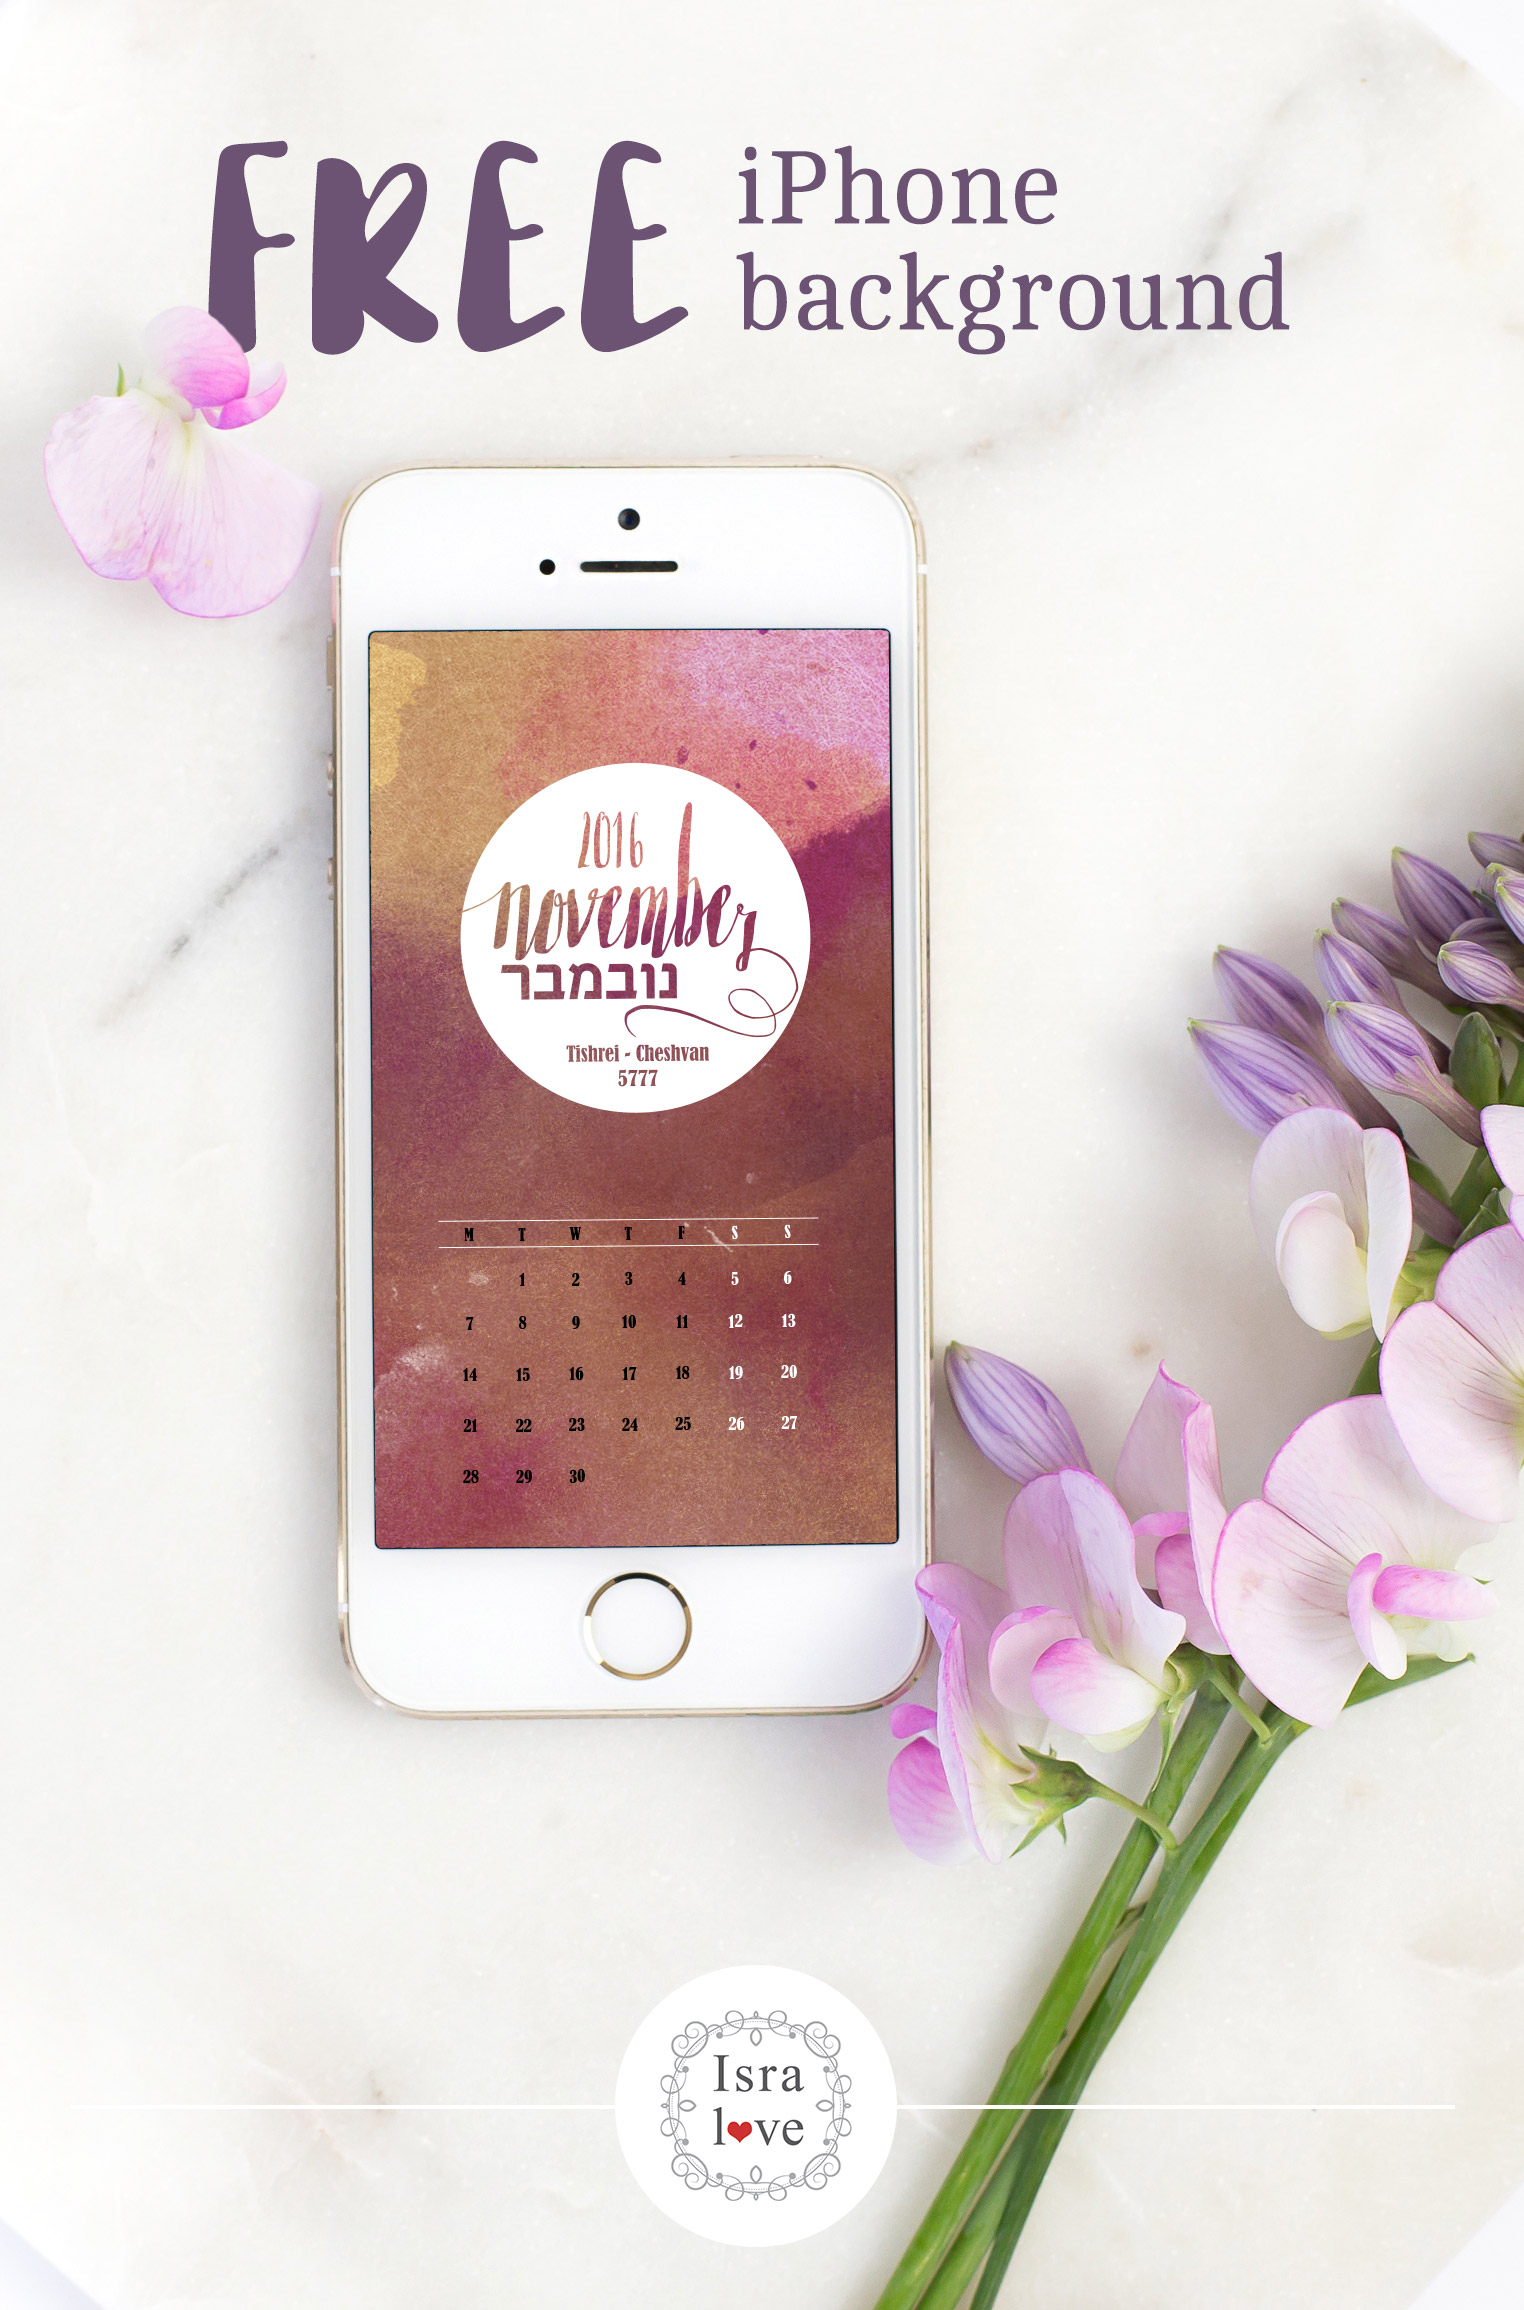 What a beatiful watercolor iPhone background. Jewish Calendar for November / Tishrei - Cheshvan 5777, including Jewish holidays. Free Download by Isralove